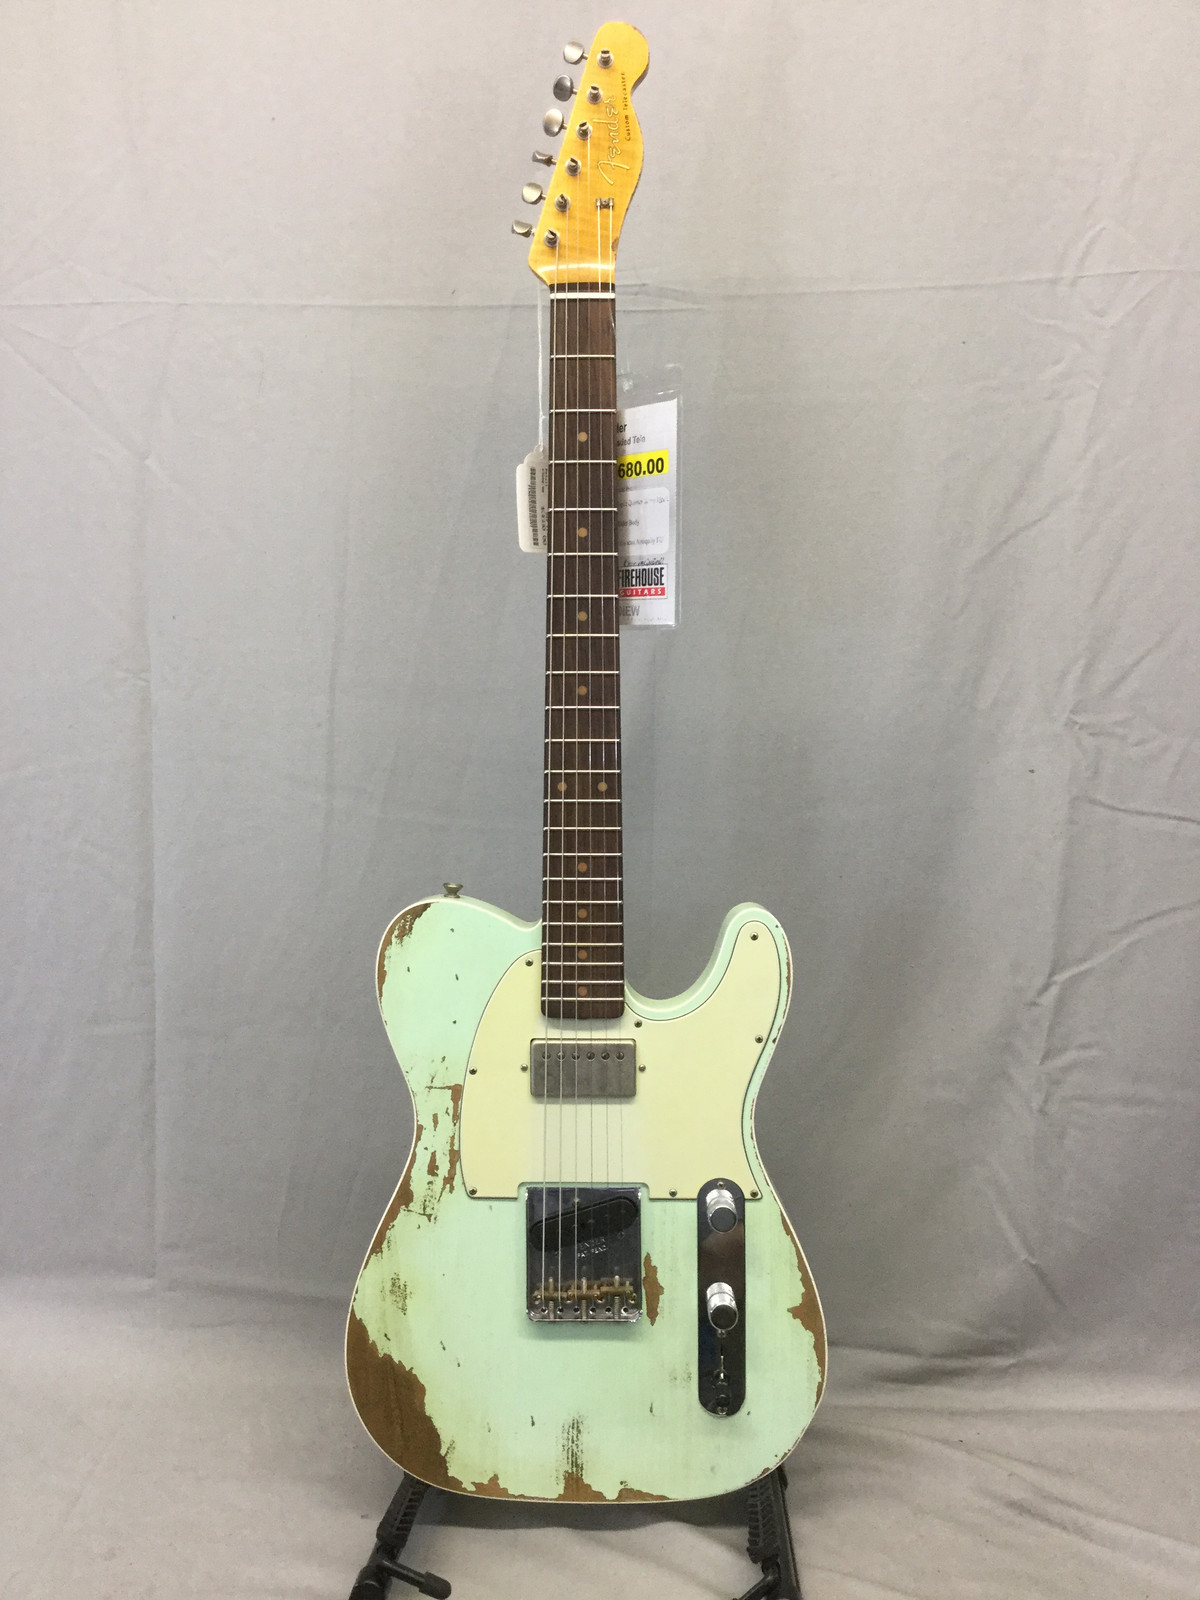 Firehouse Guitars Grandville Instrument Sales Lessons This Gives You The Usual Tele Sounds In First Three Positions But 60s Super Faded Aged Hb Custom Heavy Relic Summer Event Limited Edition